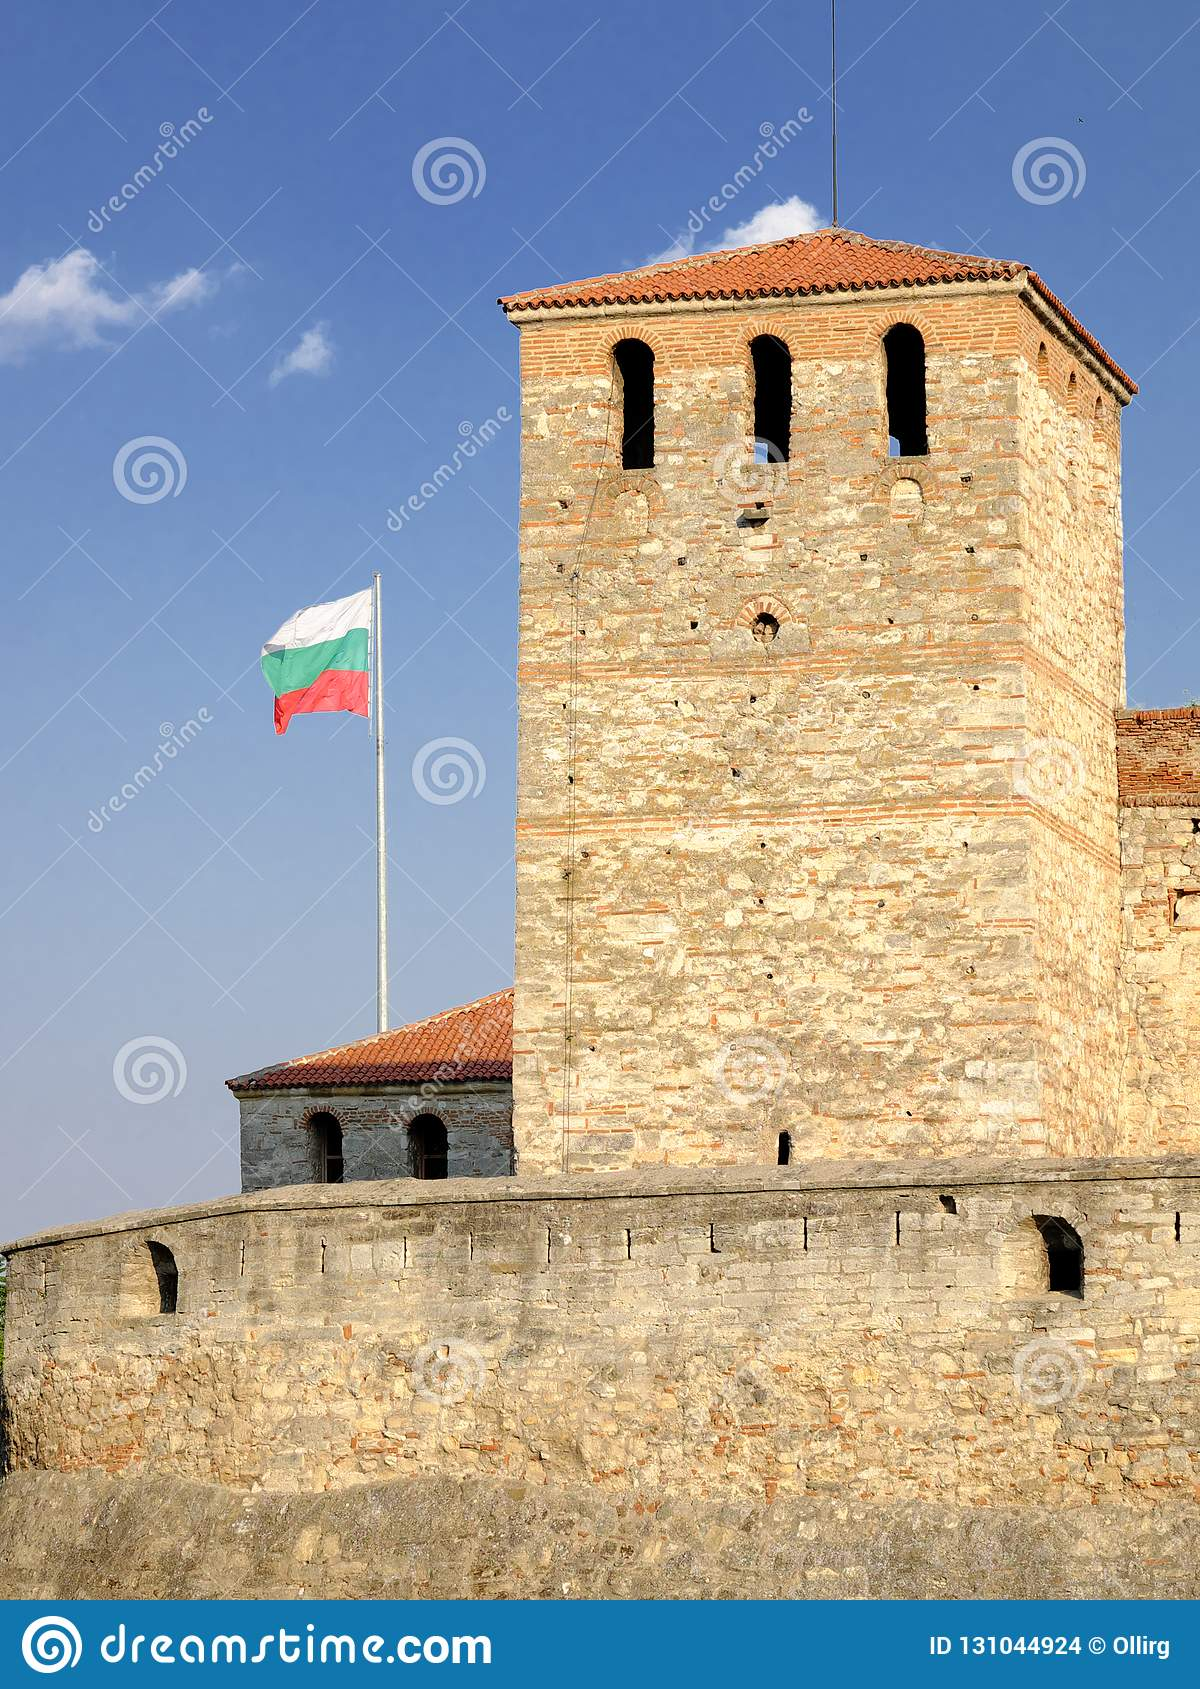 Baba Vida Fortress And Bulgarian Flag in Vidin